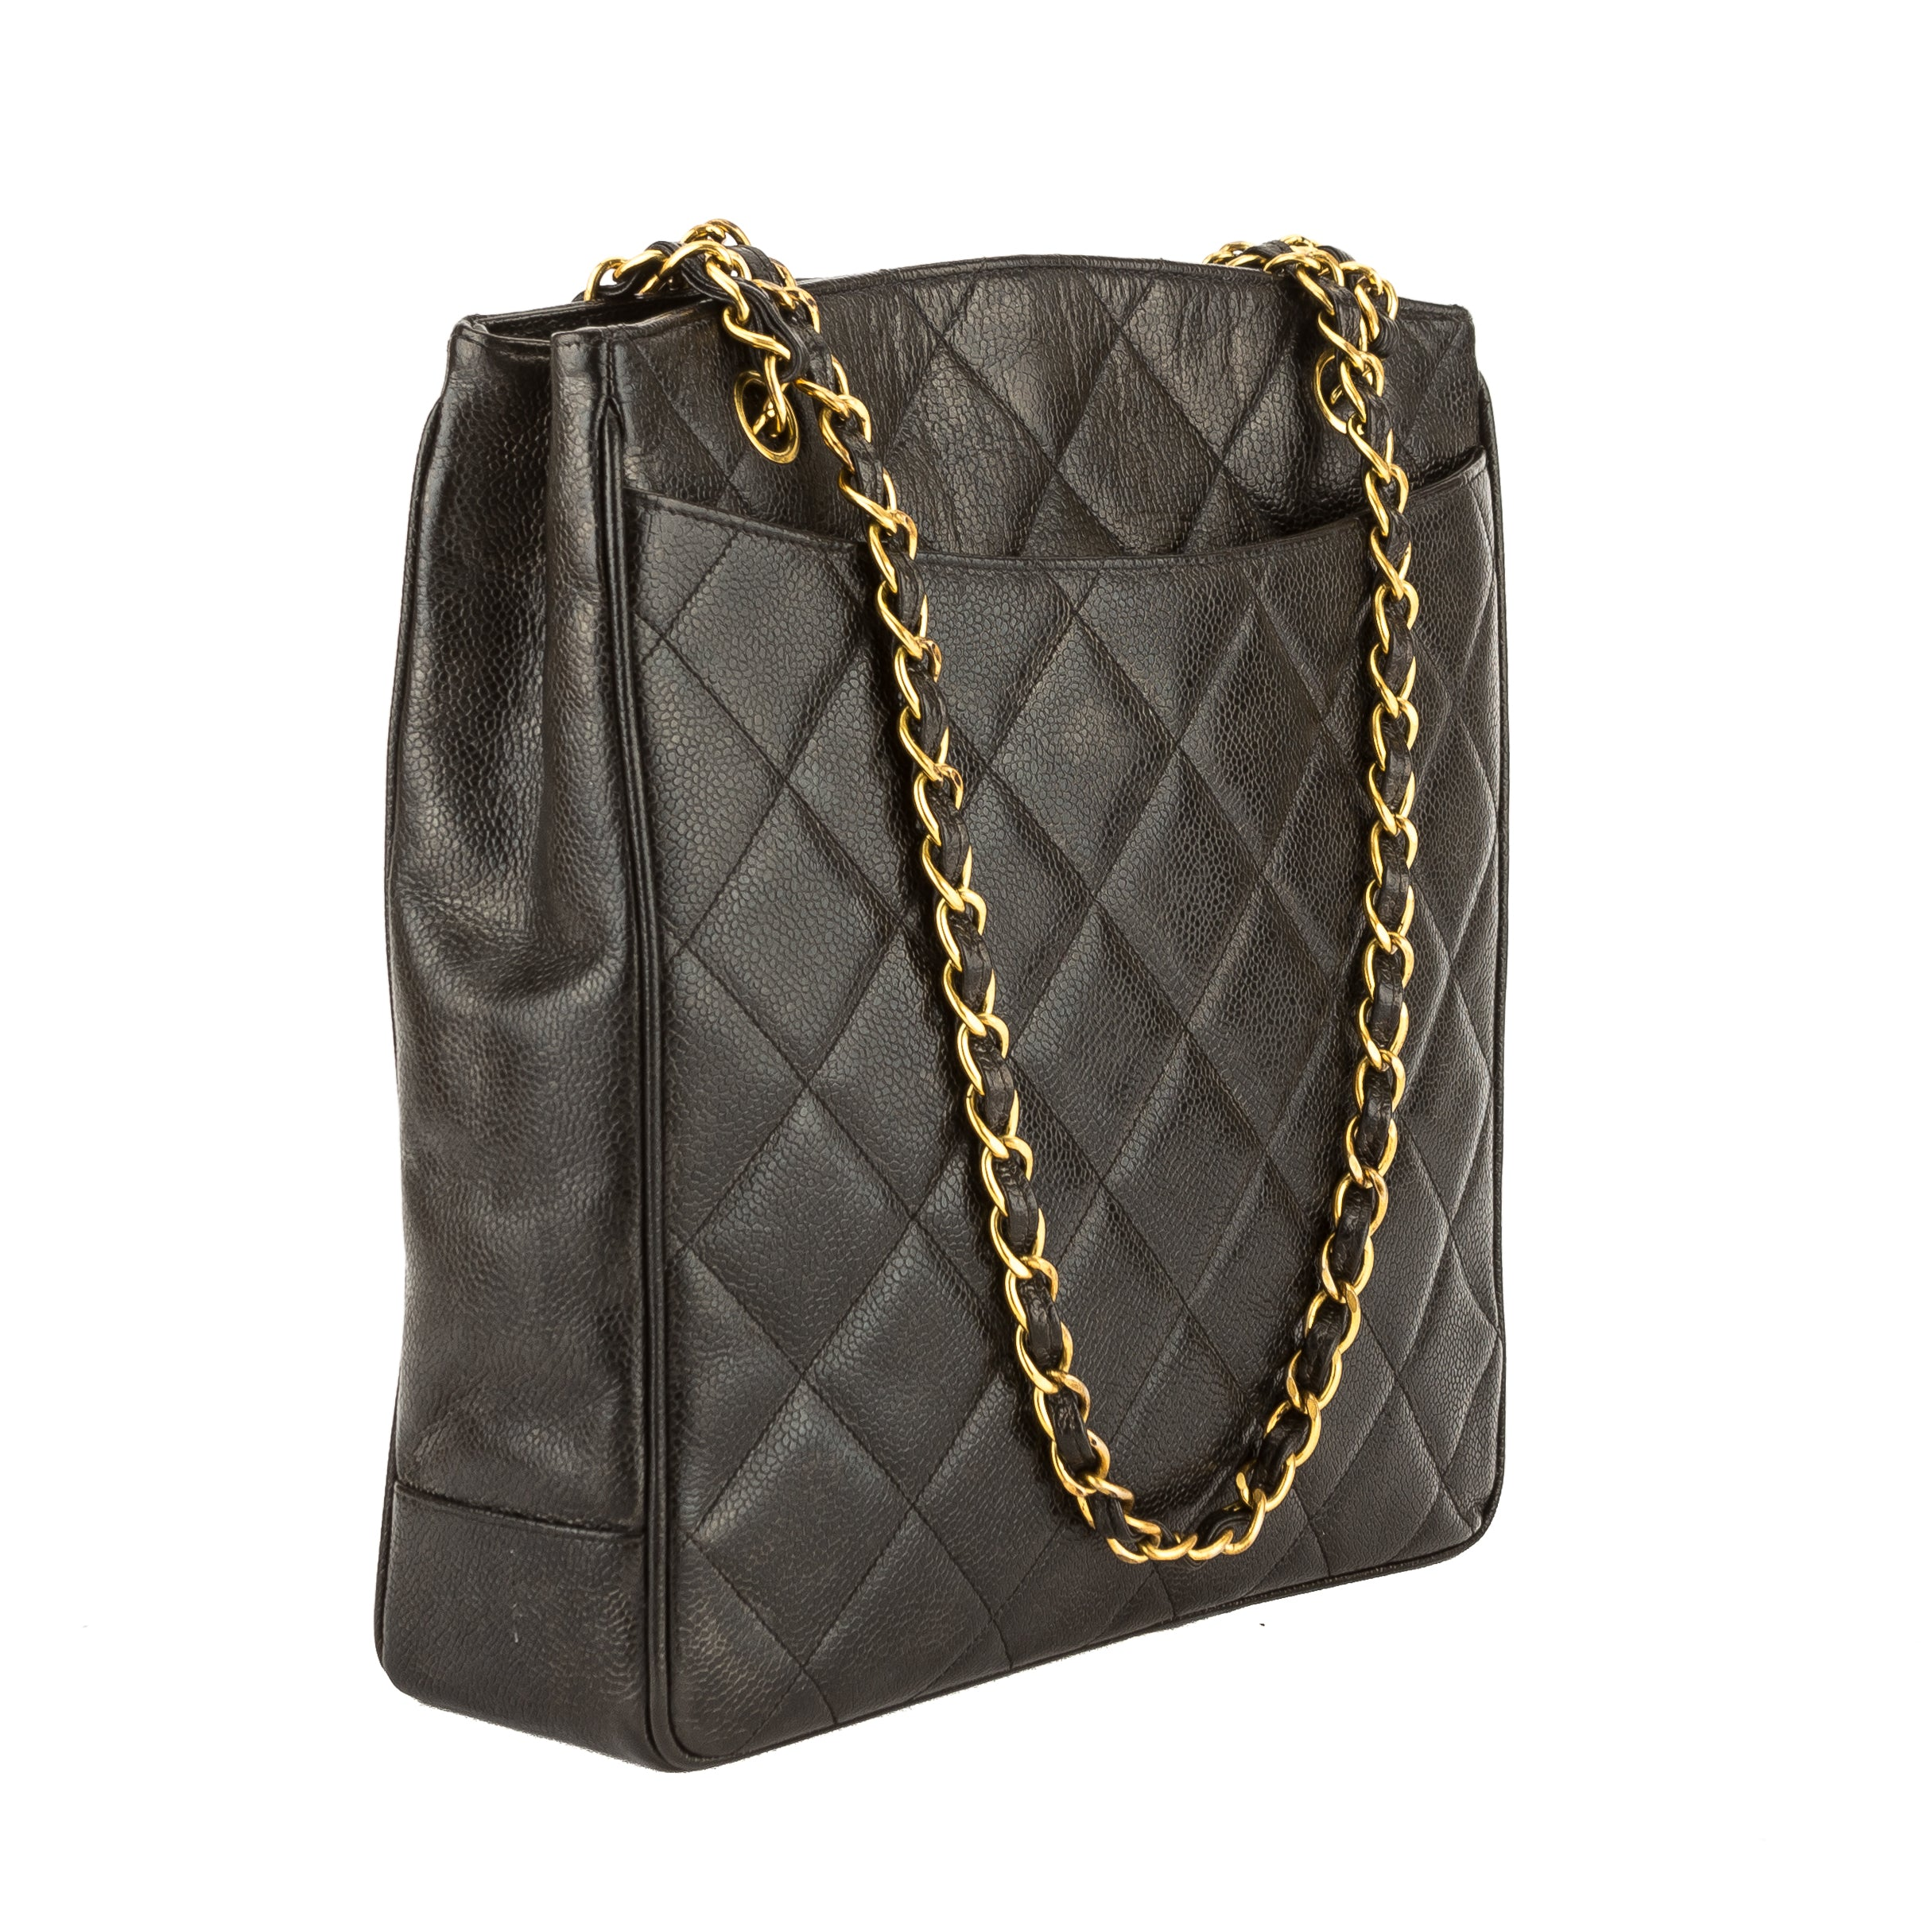 fa37584ebb7715 Chanel Black Quilted Caviar Leather Chain Shoulder Bag (Pre Owned ...